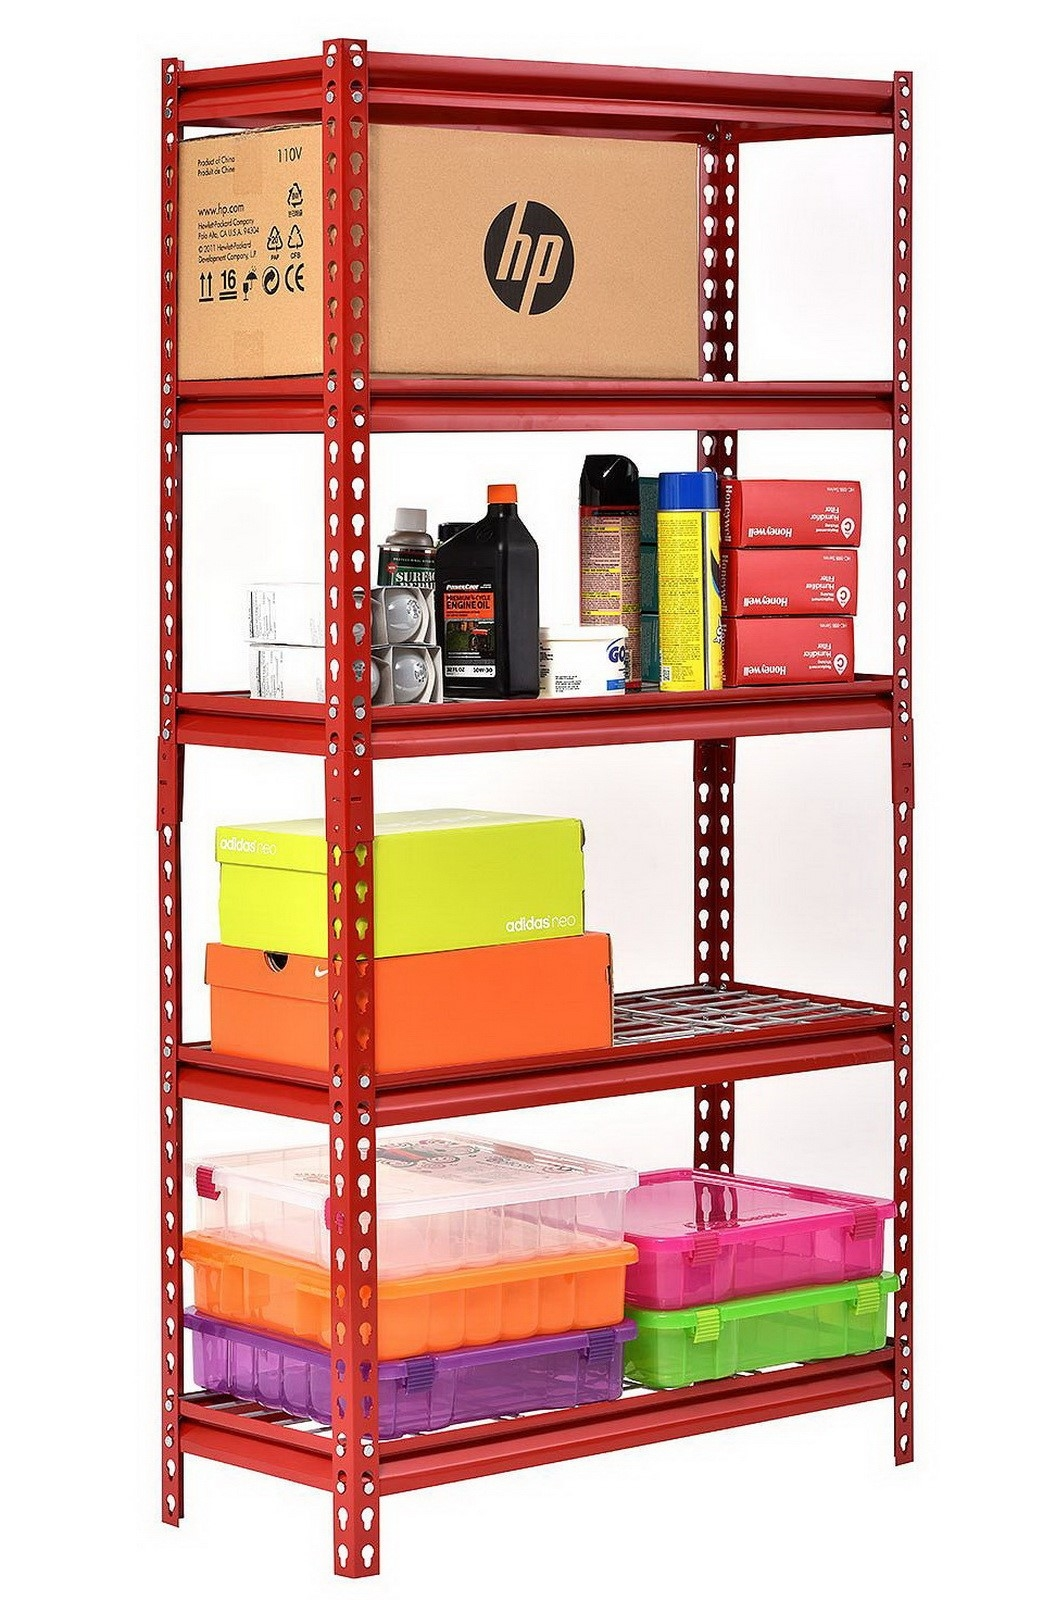 brand new in factory sealed retail box garage storage shelving muscle rack 5 shelf steel shelving unit 30 width x 60 height x 12 depth red sturdy